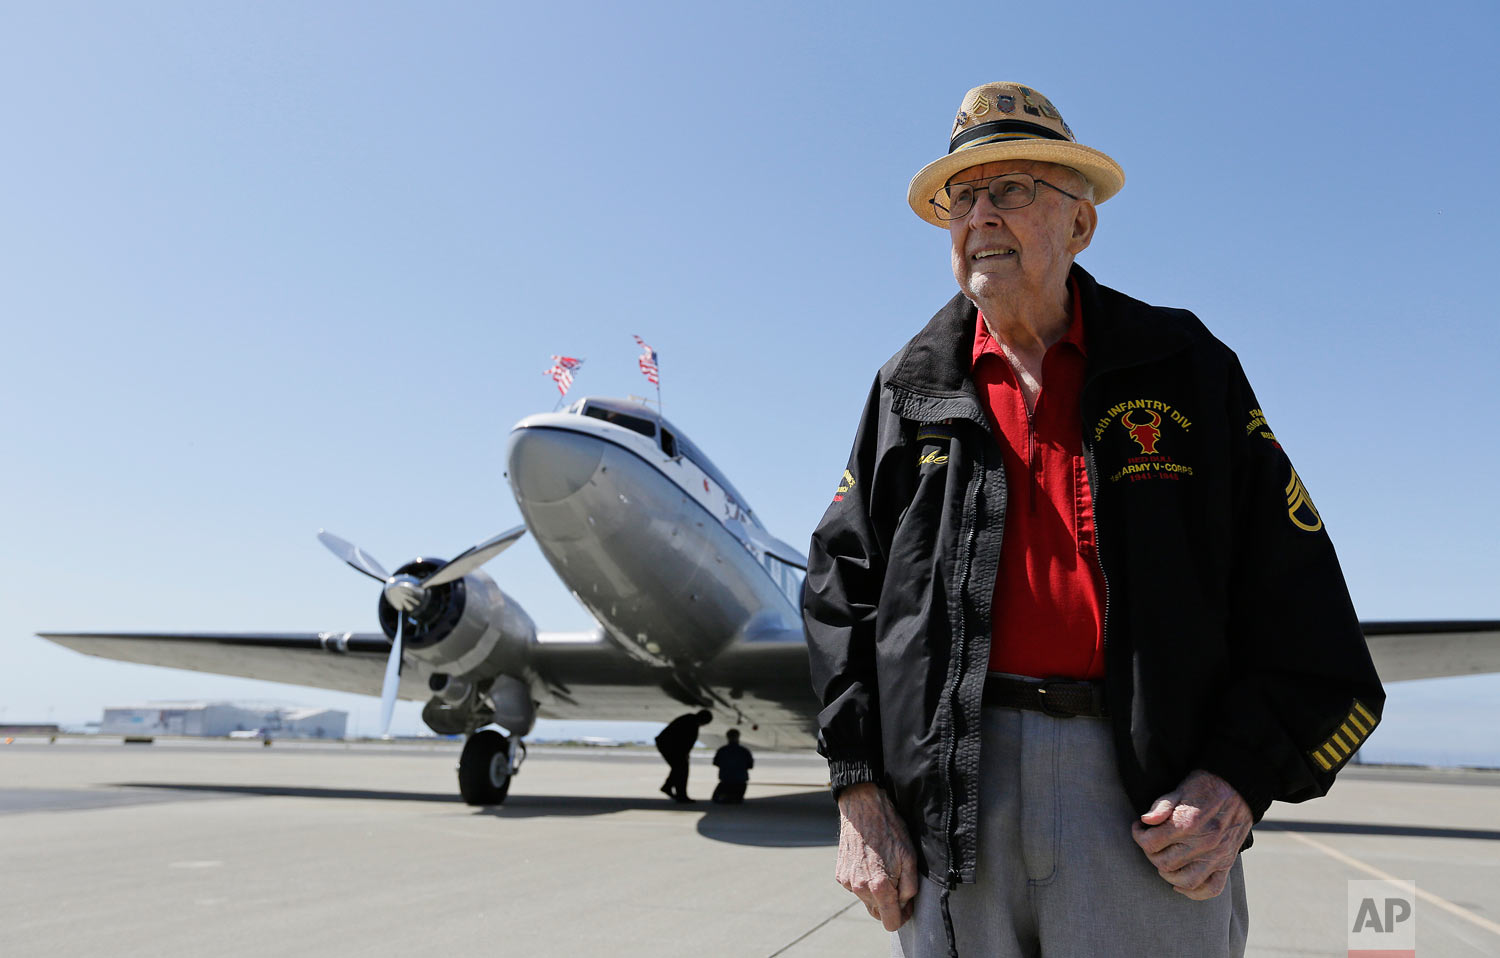 "In this photo taken April 29, 2019, D-Day veteran Jake Larson poses before going for a ride in the ""The Spirit of Benovia"" World War II-era aircraft in Oakland, Calif. Both Larson and the former C-53 Skytrooper transport plane plan to be in Normandy, France and take part in events for the 75th anniversary of D-Day. The plane takes its name after a winery in Sonoma County. (AP Photo/Eric Risberg)"